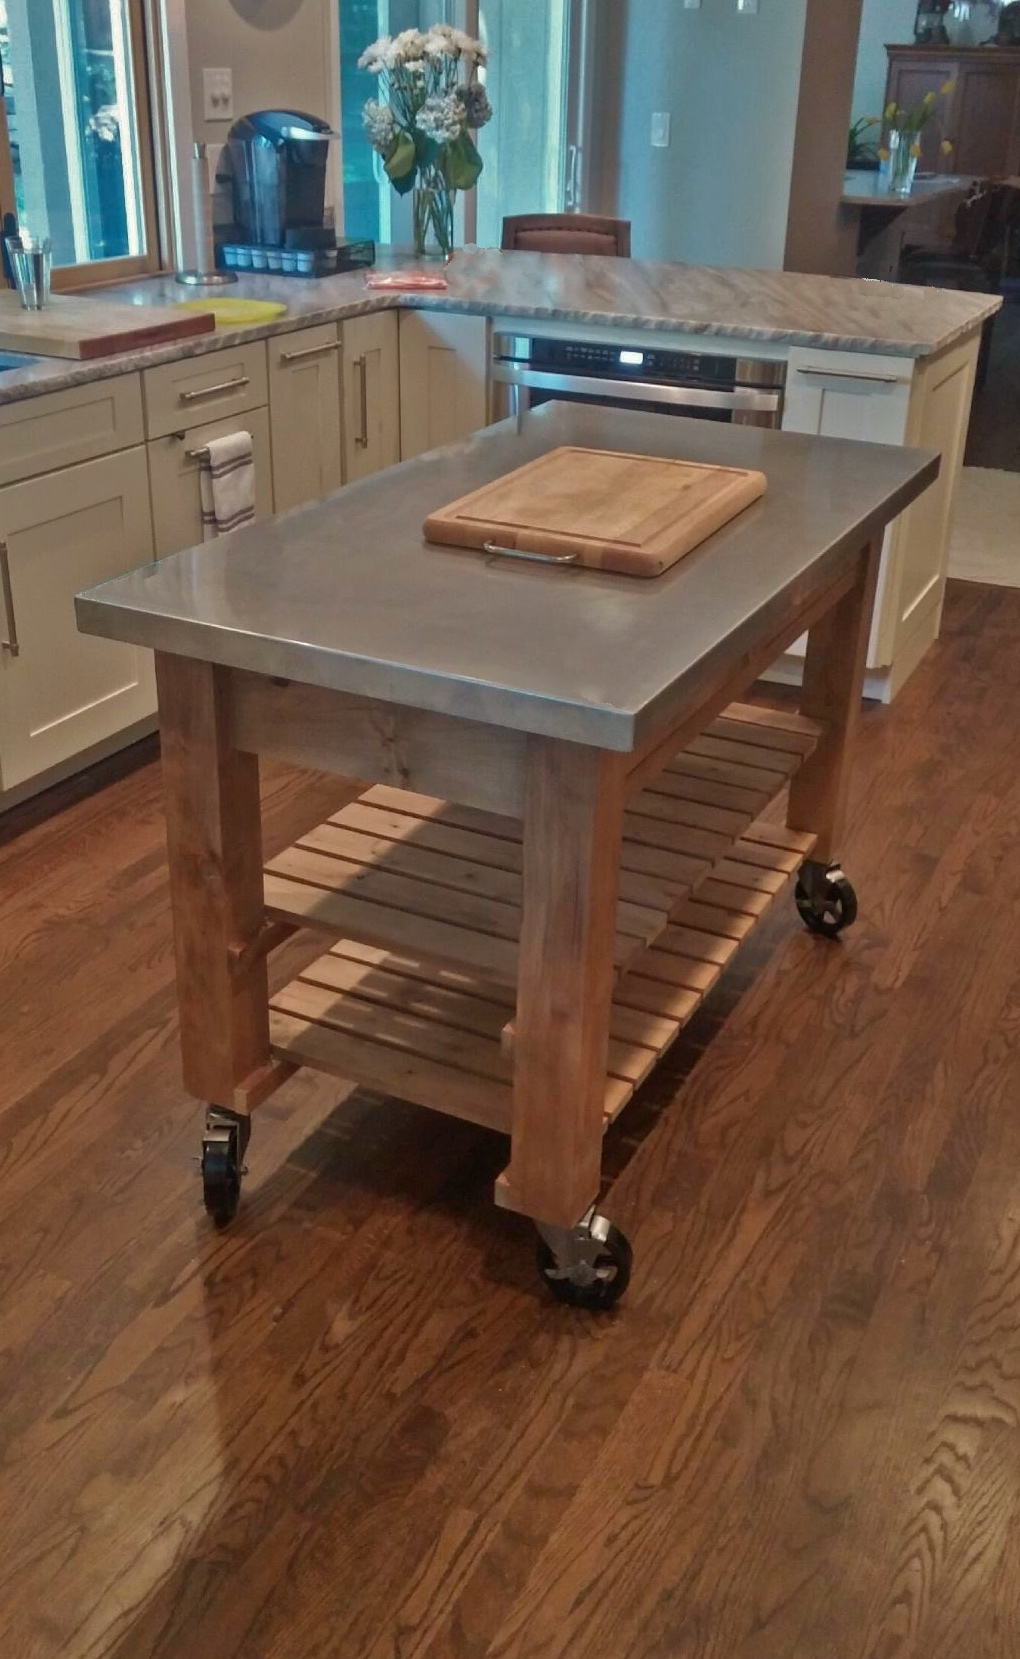 Kitchen Island With Stainless Steel Top Board Bolt